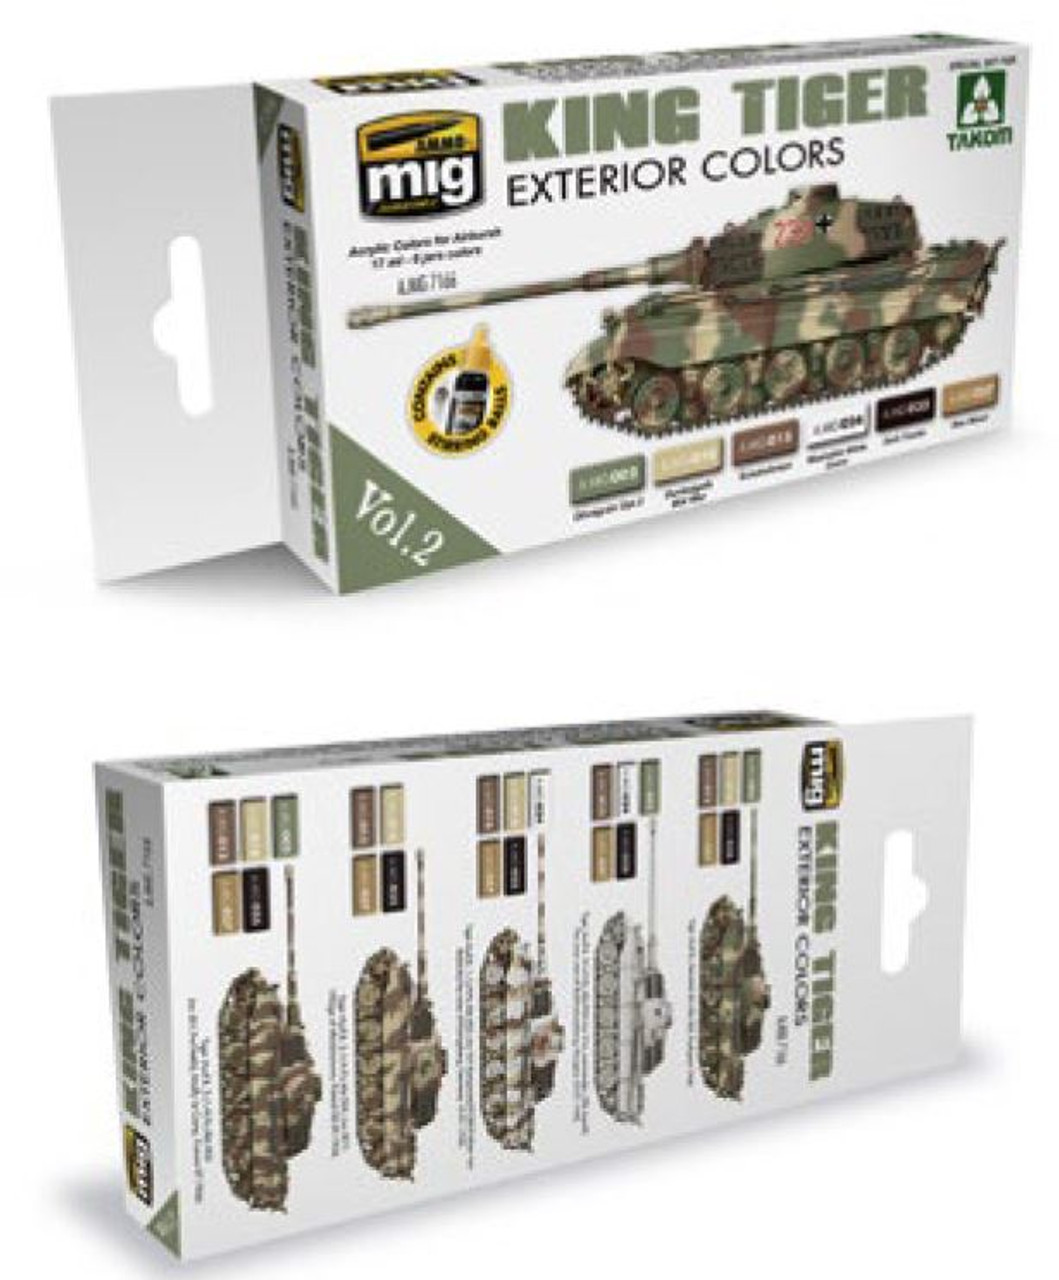 King Tiger Exterior Color Acrylic Paint Set (Takom Edition) AMMO of ...